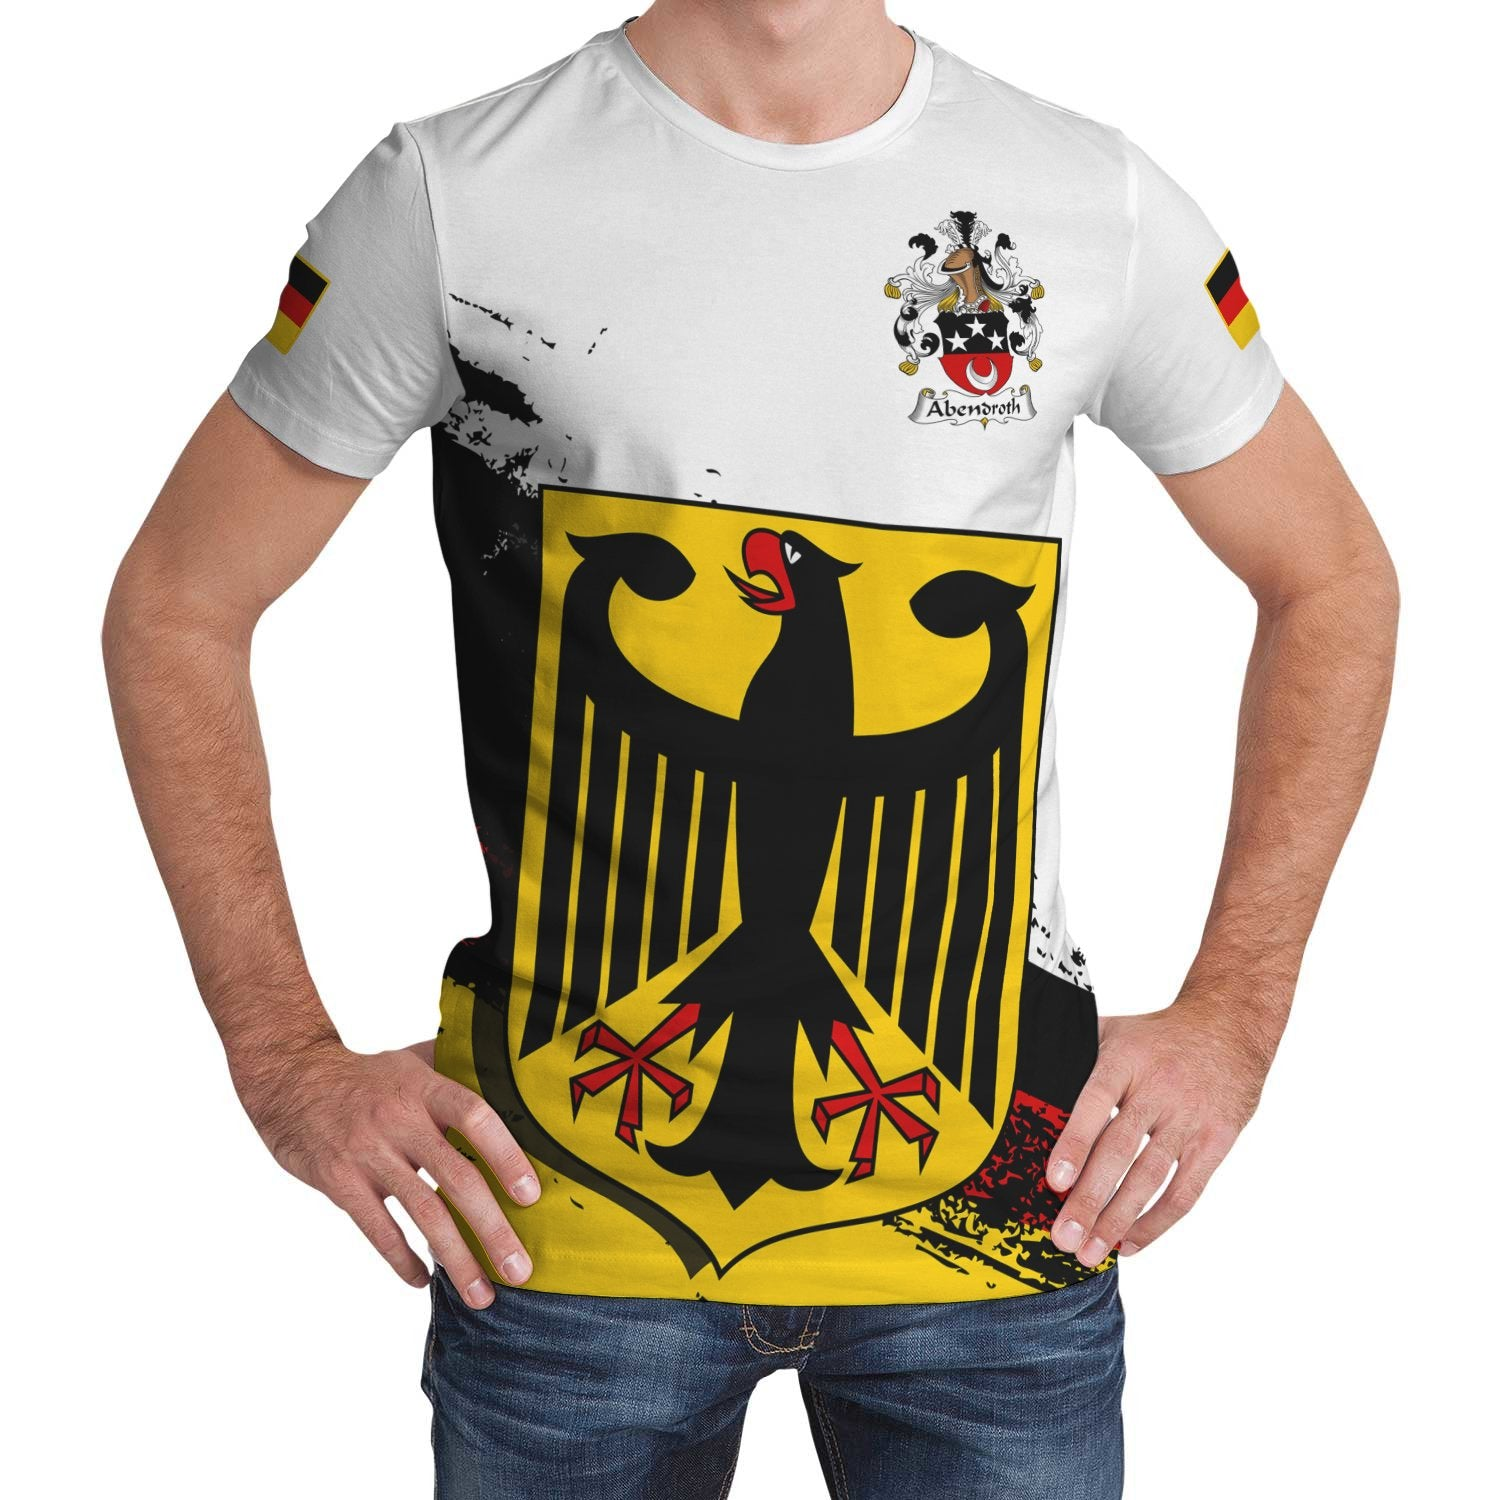 Abendroth Germany T-Shirt - German Family Crest (Women's/Men's) | Over 2000 German Crests | Clothing | Apparel